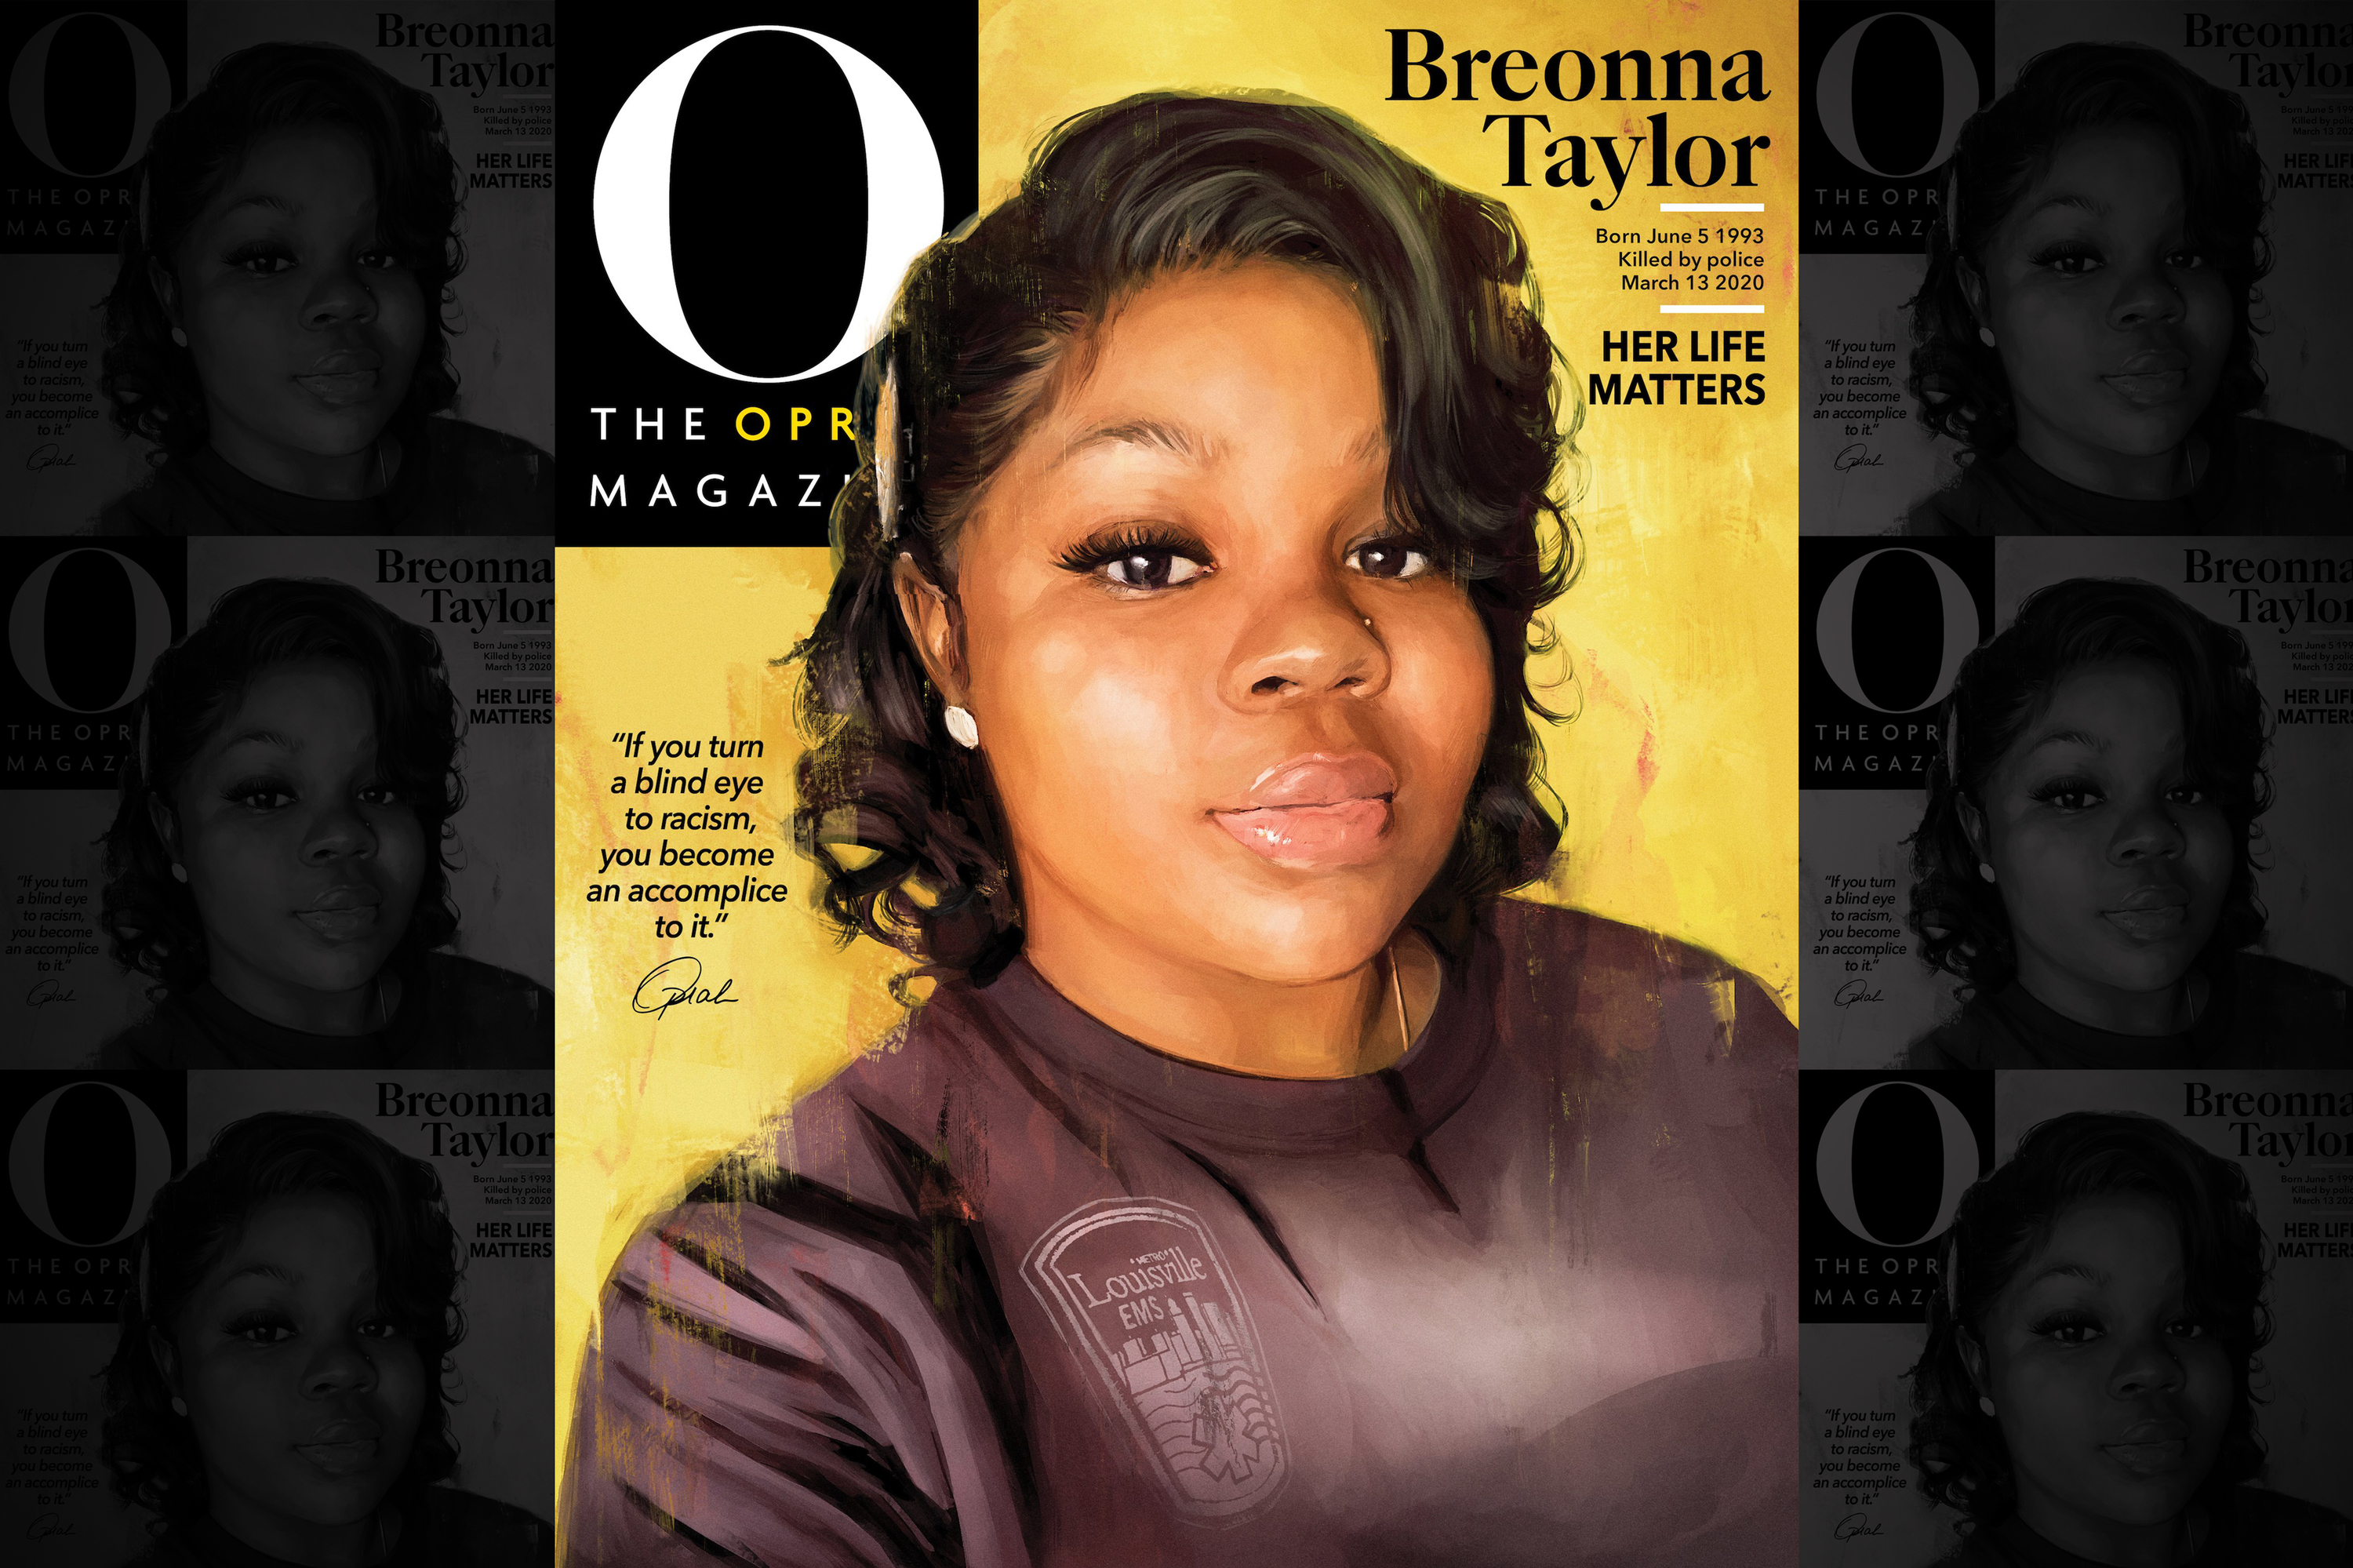 'I cry for justice in her name': Oprah honors Breonna Taylor on the cover of her magazine